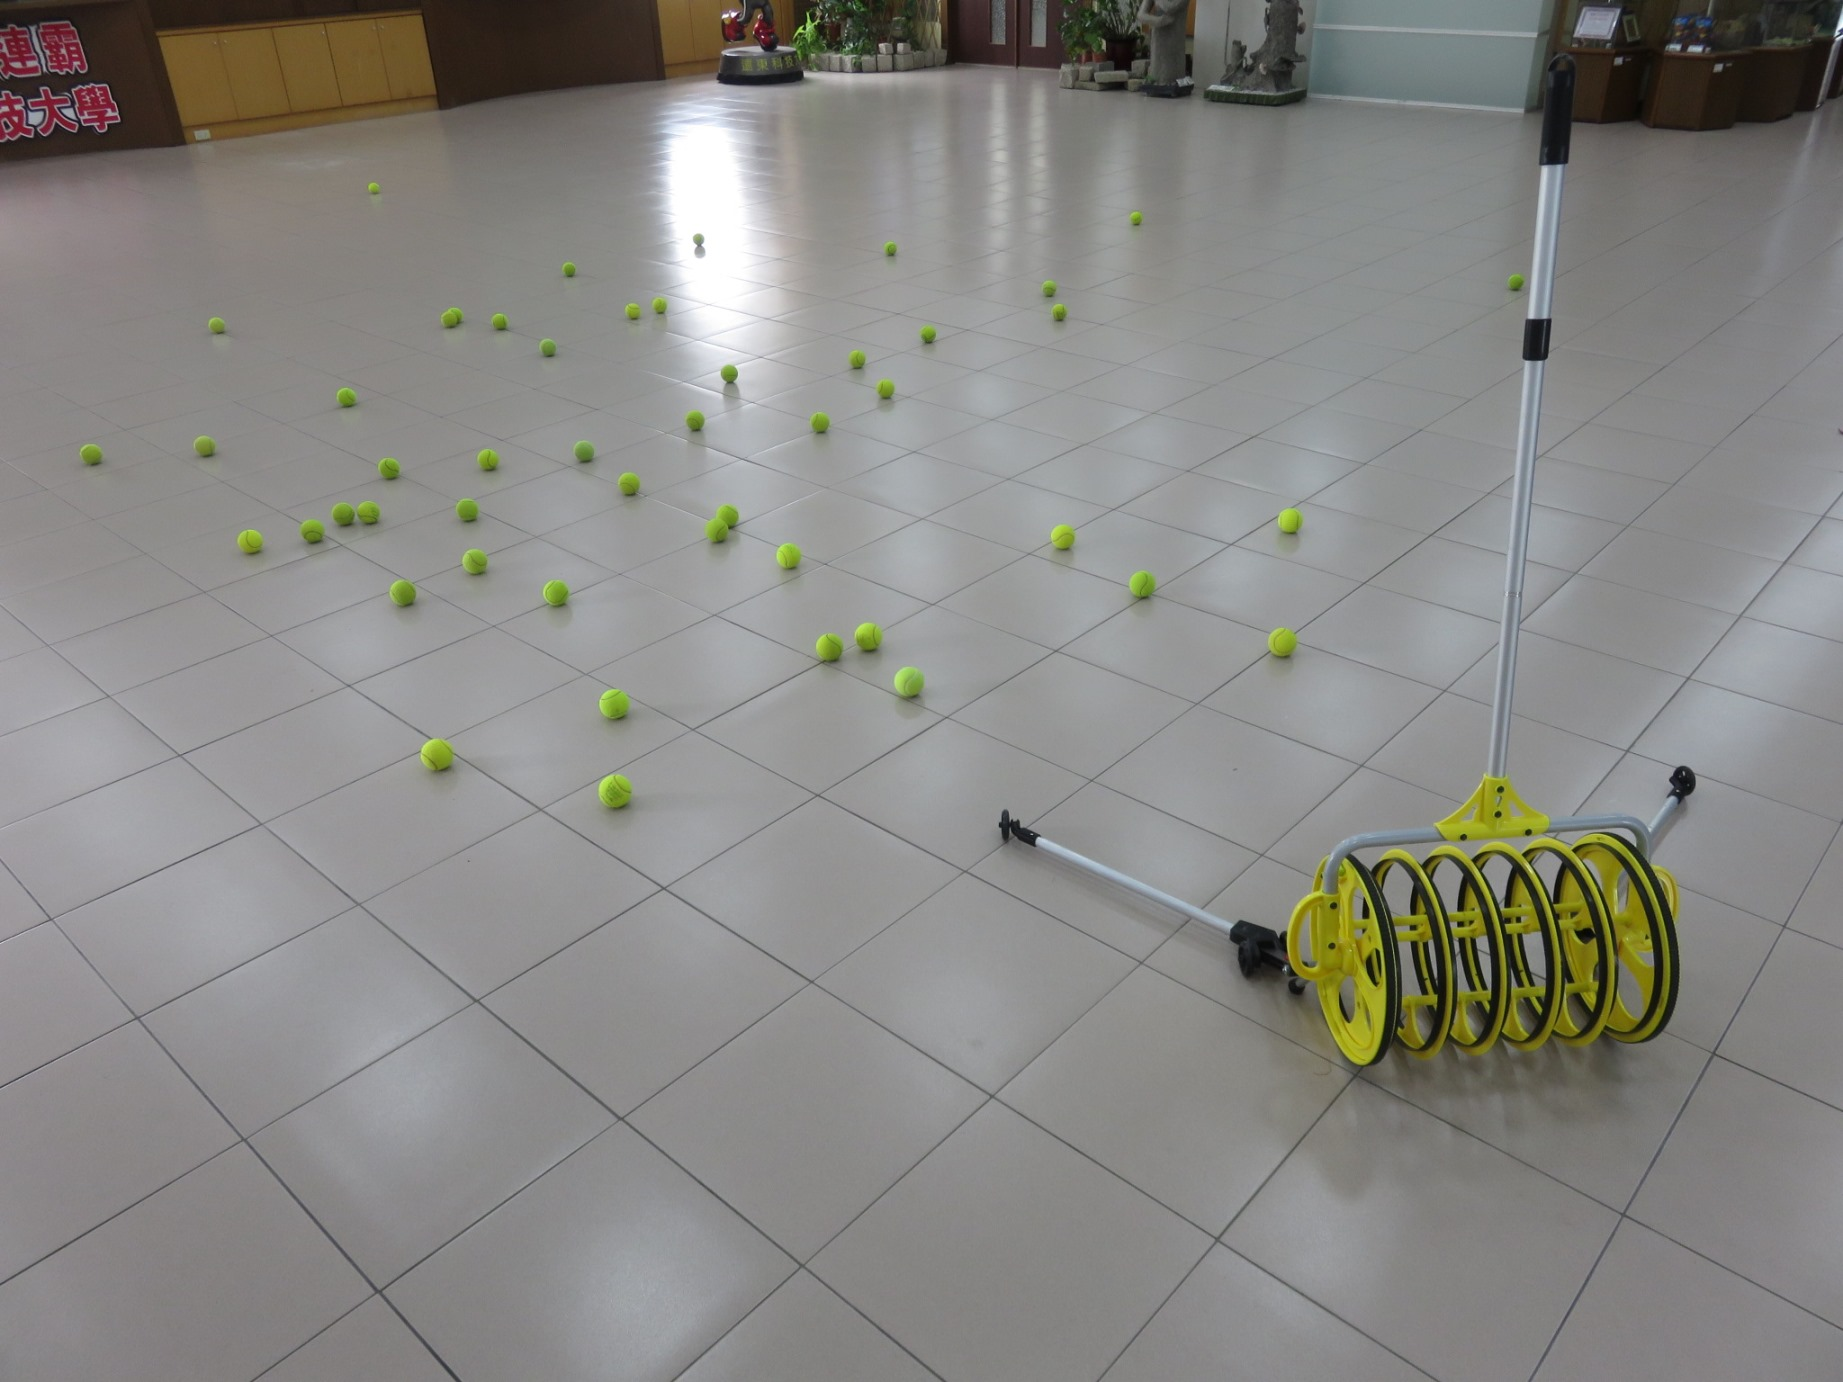 A High-Efficiency and Manpower-Saving Ball Collecting Device